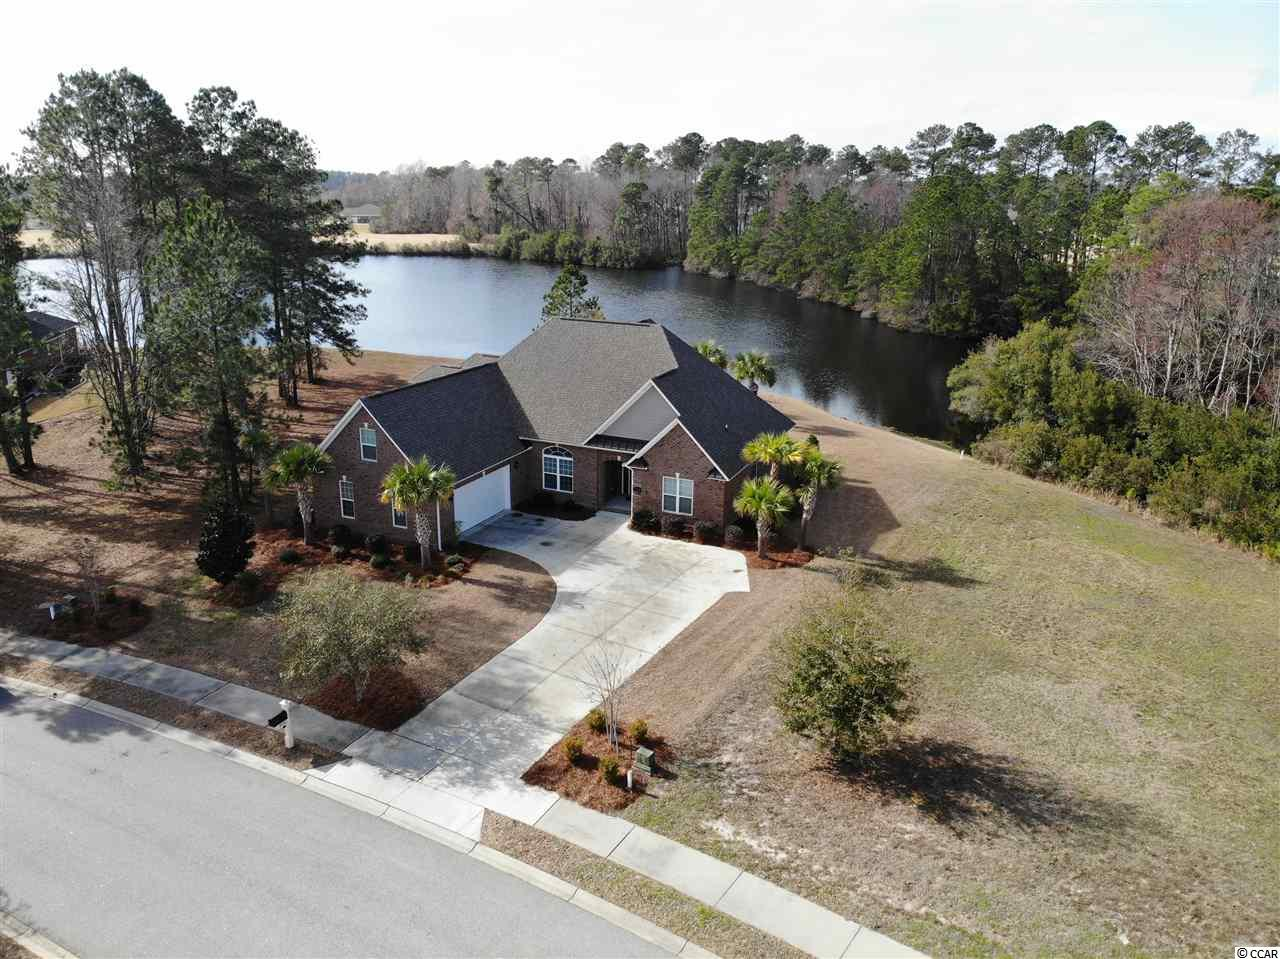 Sitting on a fantastic lake homesite, 1032 Muscovy Place is ideally positioned at the end of a quiet cul-de-sac street. This custom built home has all the features today's home buyers require.  The open split bedroom floor plan has terrific sightlines with tons of natural light.  A large kitchen and great room combination are sure to the favorite area of the home.  Custom cabinets, oversized work island, tile backsplash and under cabinet lighting will make cooking in this kitchen a dream come true.  Start your morning out right with breakfast with a view.  The breakfast nook and sprawling screen porch offer fantastic views of the lake.  The big master bedroom has a tray ceiling with rope lighting, large walk-in closet, and a to-die-for open-air shower.  On the opposite side of the home, the spacious guest bedrooms share a hall bathroom.  Rounding out the main living area is a formal dining room with a tray ceiling and a half bath for guests.  Endless potential uses await you upstairs.  The fourth bedroom is adjoined to a bonus room with a wet bar. Perfect for a media room, play area, pool table, and countless other options this room will rival the central living space as the place to be.  1032 Muscovy Place upmarket features and improvements include upgrading landscaping, hardwood floors, granite countertops, custom cabinets, and much more.  Homeowners are afforded a myriad of world-class amenities starting with a multi-million dollar clubhouse.  Three pools, slide, splash zone, fitness center, beach, day docks, playground, on-site boat storage, basketball court, and lighted tennis courts are all privileges of ownership at Wild Wing Plantation.  In addition to 180 acres of freshwater lakes and close to 14 miles of shoreline Wild Wing Plantation features 27 holes of championship golf.  The golf club features driving/putting/chipping practice areas, pro shop, a Pub, and Grill perfect for those times you don't feel like cooking.  Start living the life you deserve at 1032 Muscovy Place.